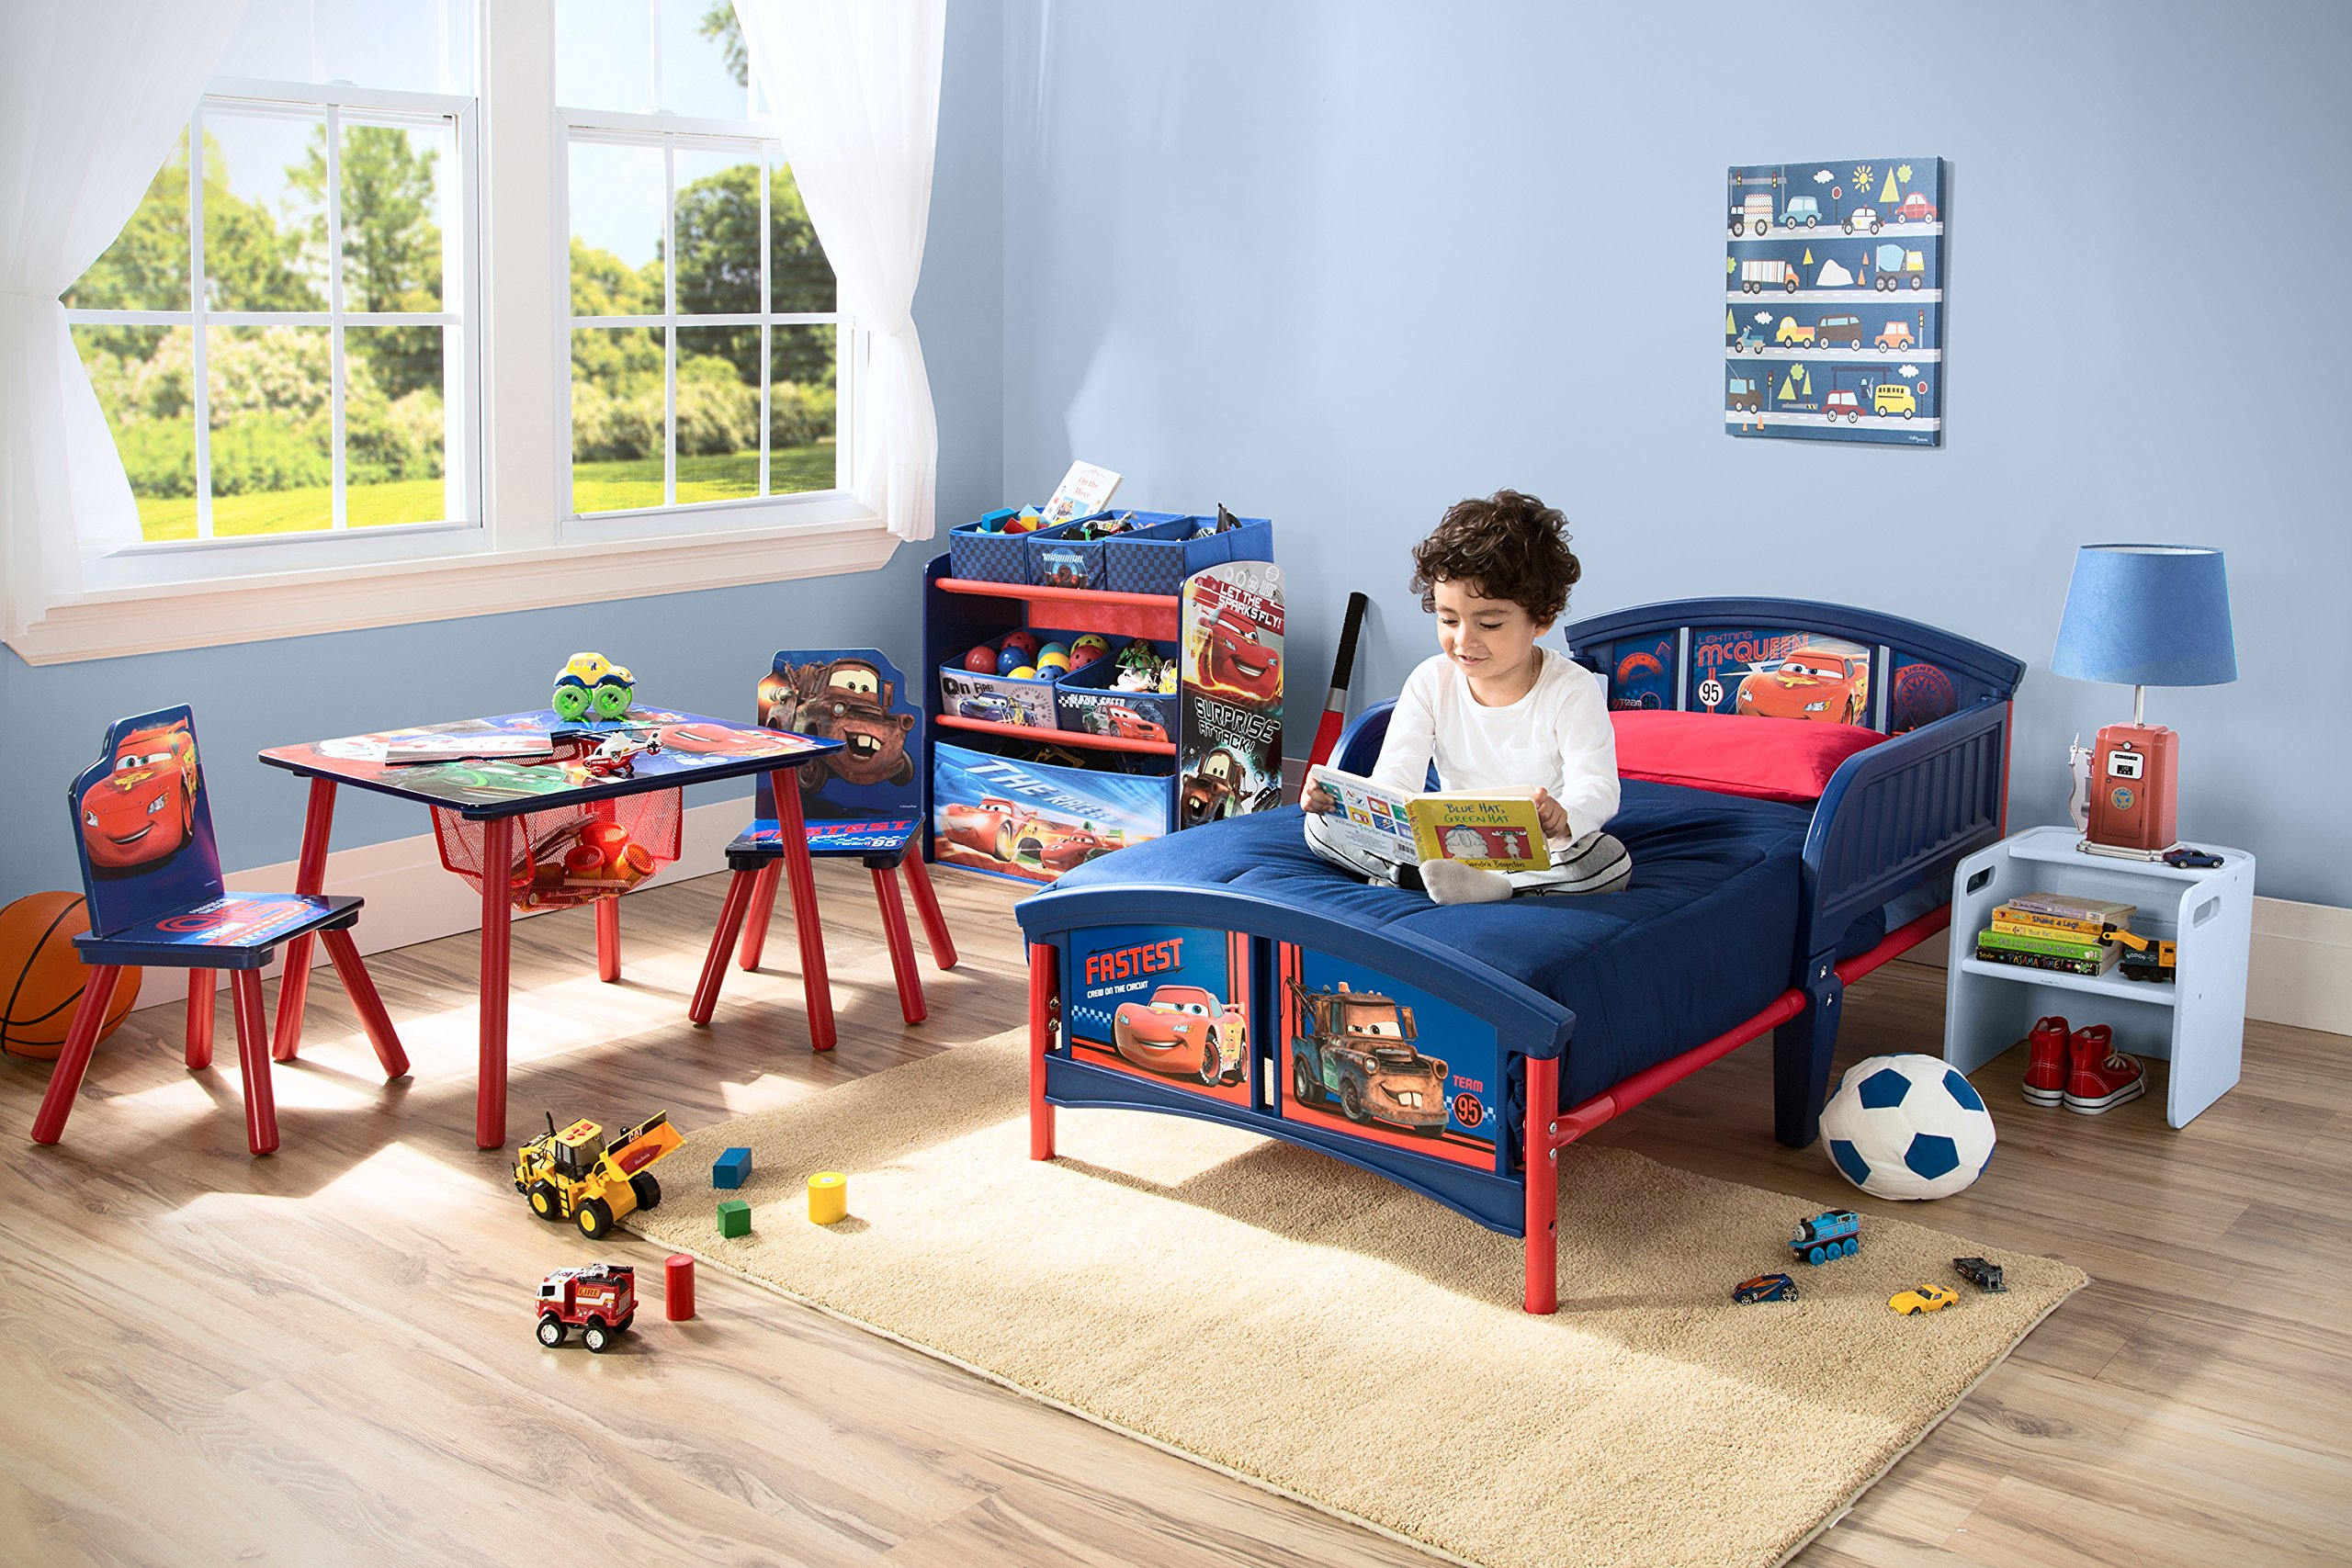 disney cars plastic toddler bed kids bedroom furniture 19968 | 91upt7xw9tl